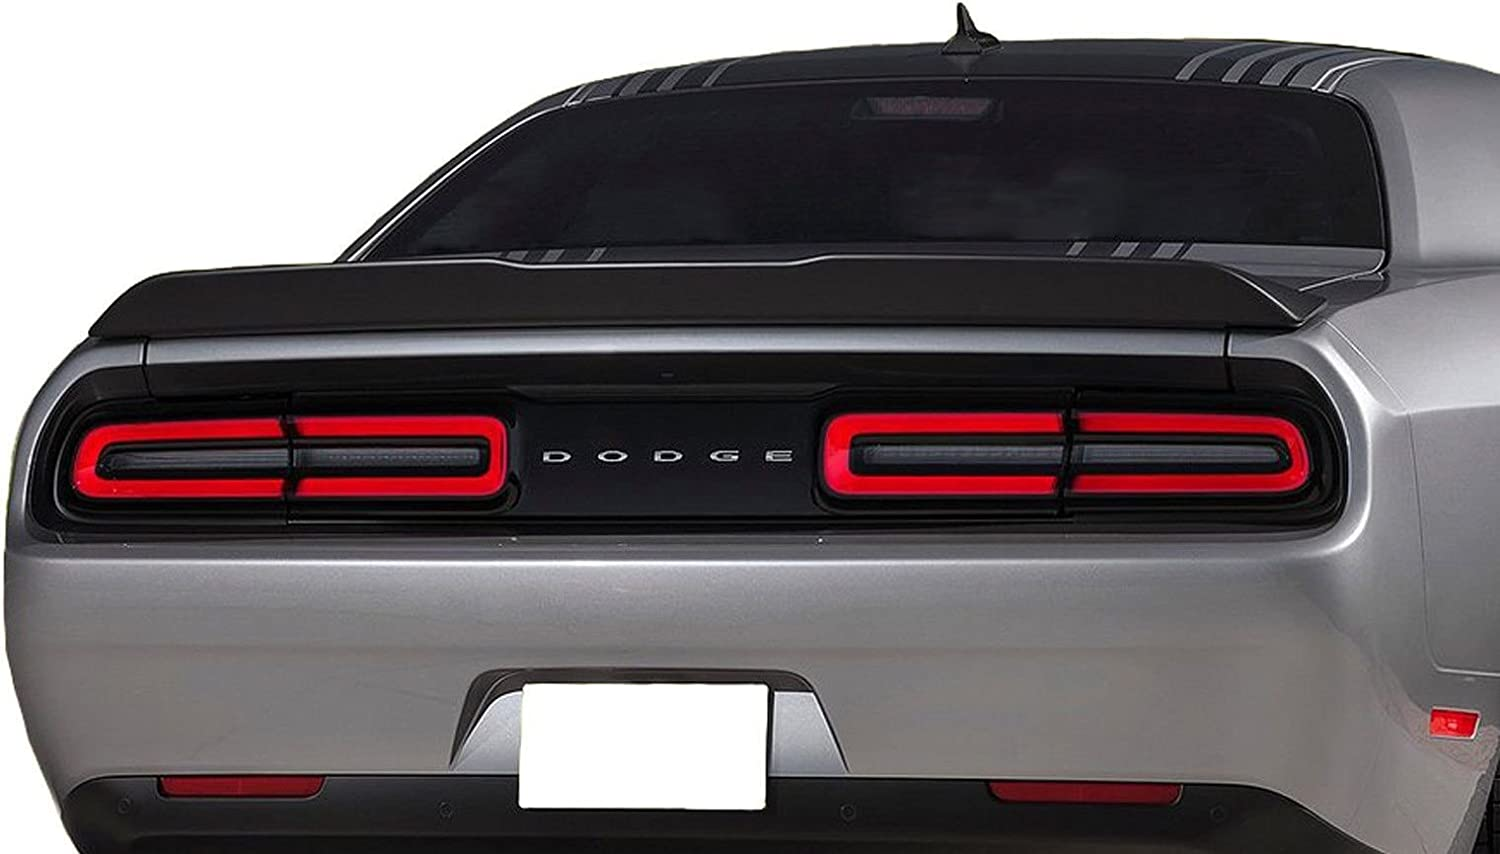 ECOTRIC Compatible Rear Trunk Lid Spoiler Wing Winglet Replace for Dodge Challenger 2008-2017 Demon Style ABS Primer Black